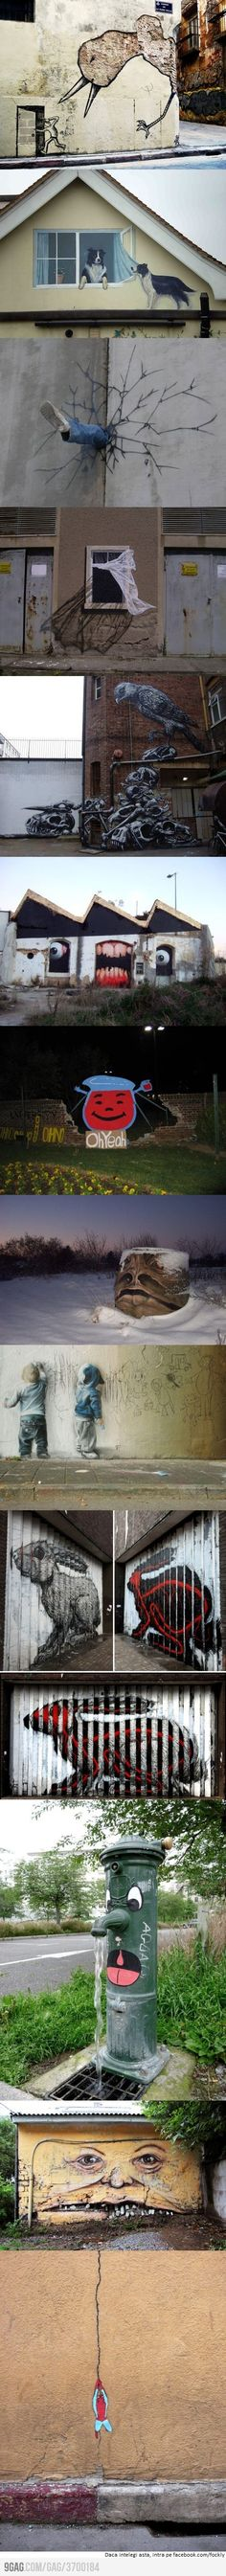 Incredible street art